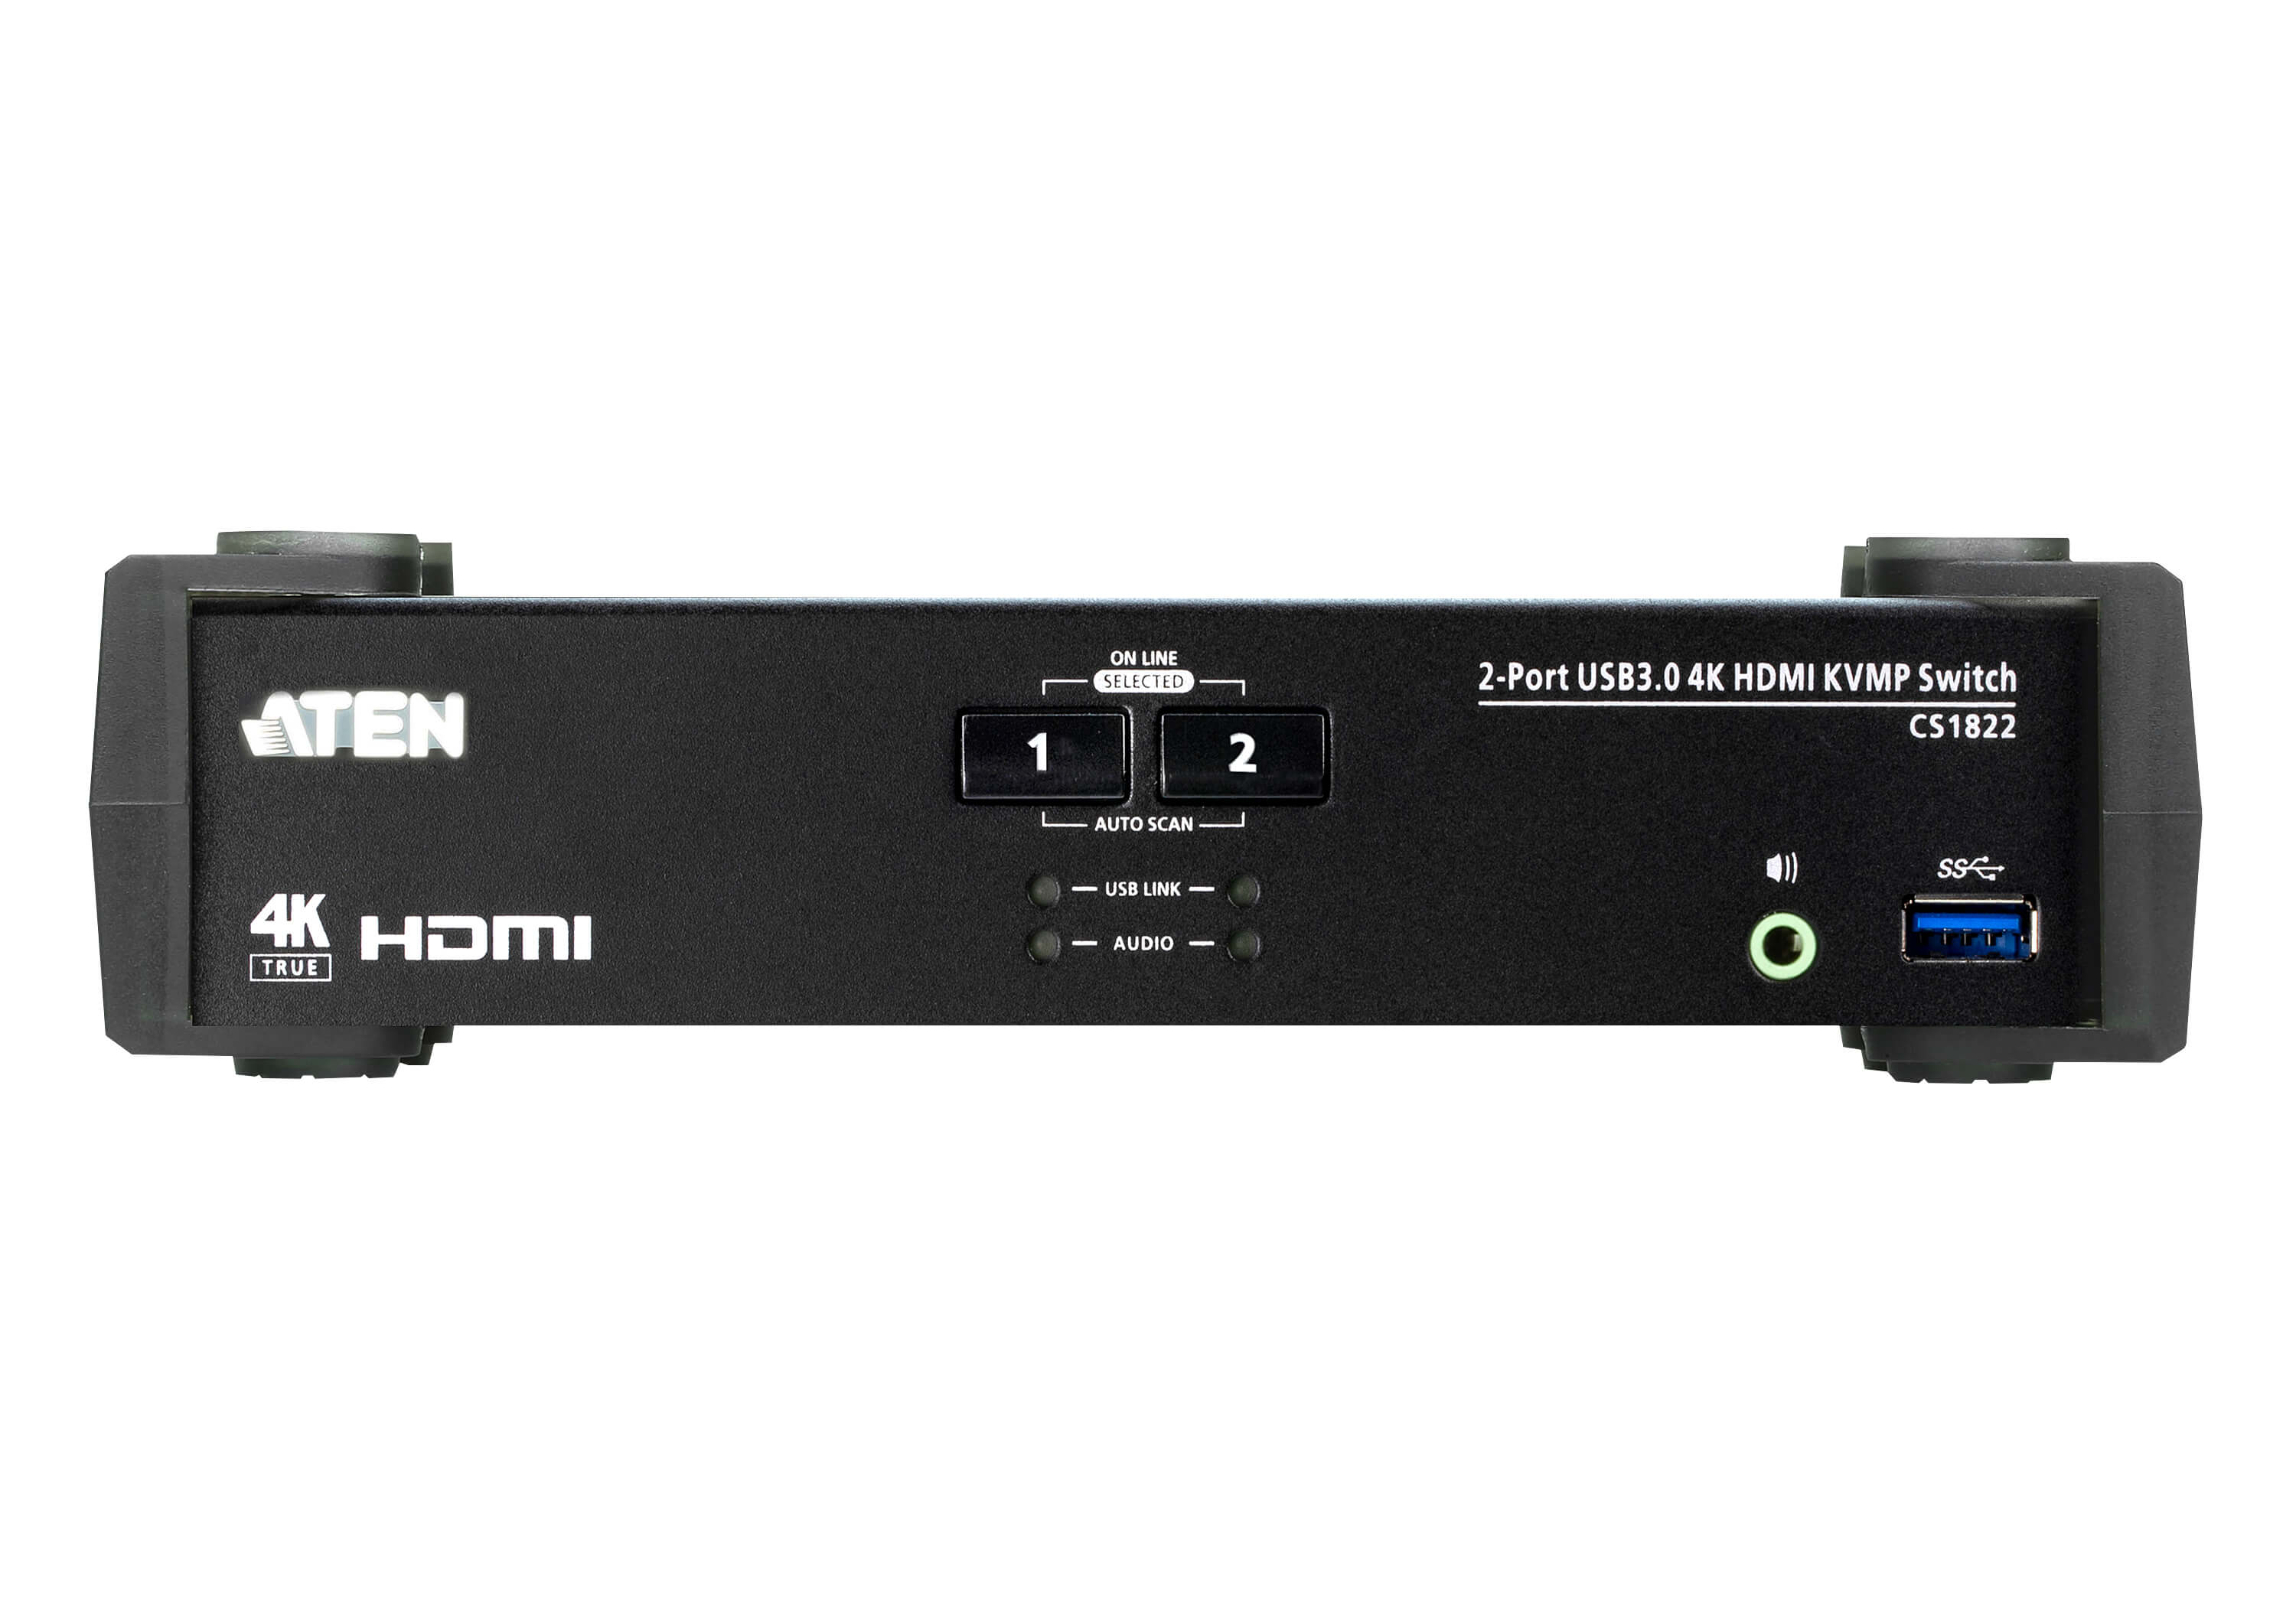 Switch USB 3.0 4K HDMI KVMP™ a 2 porte con Modalità mixer audio-3